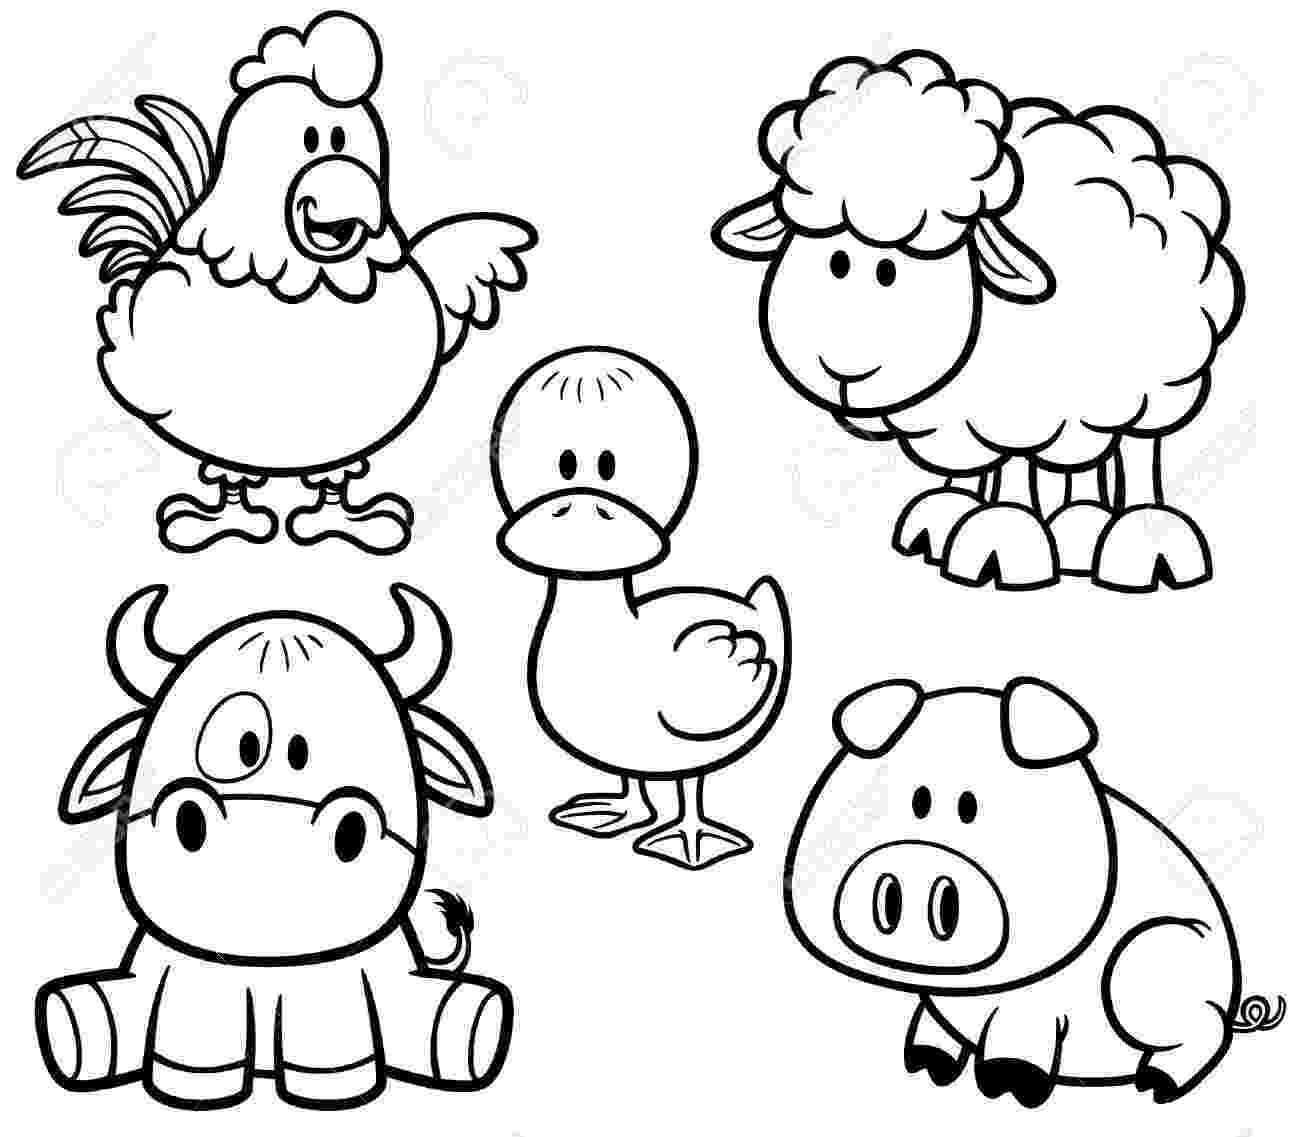 free coloring pages of baby farm animals baby farm animal coloring pages only coloring pages coloring farm animals free baby of pages